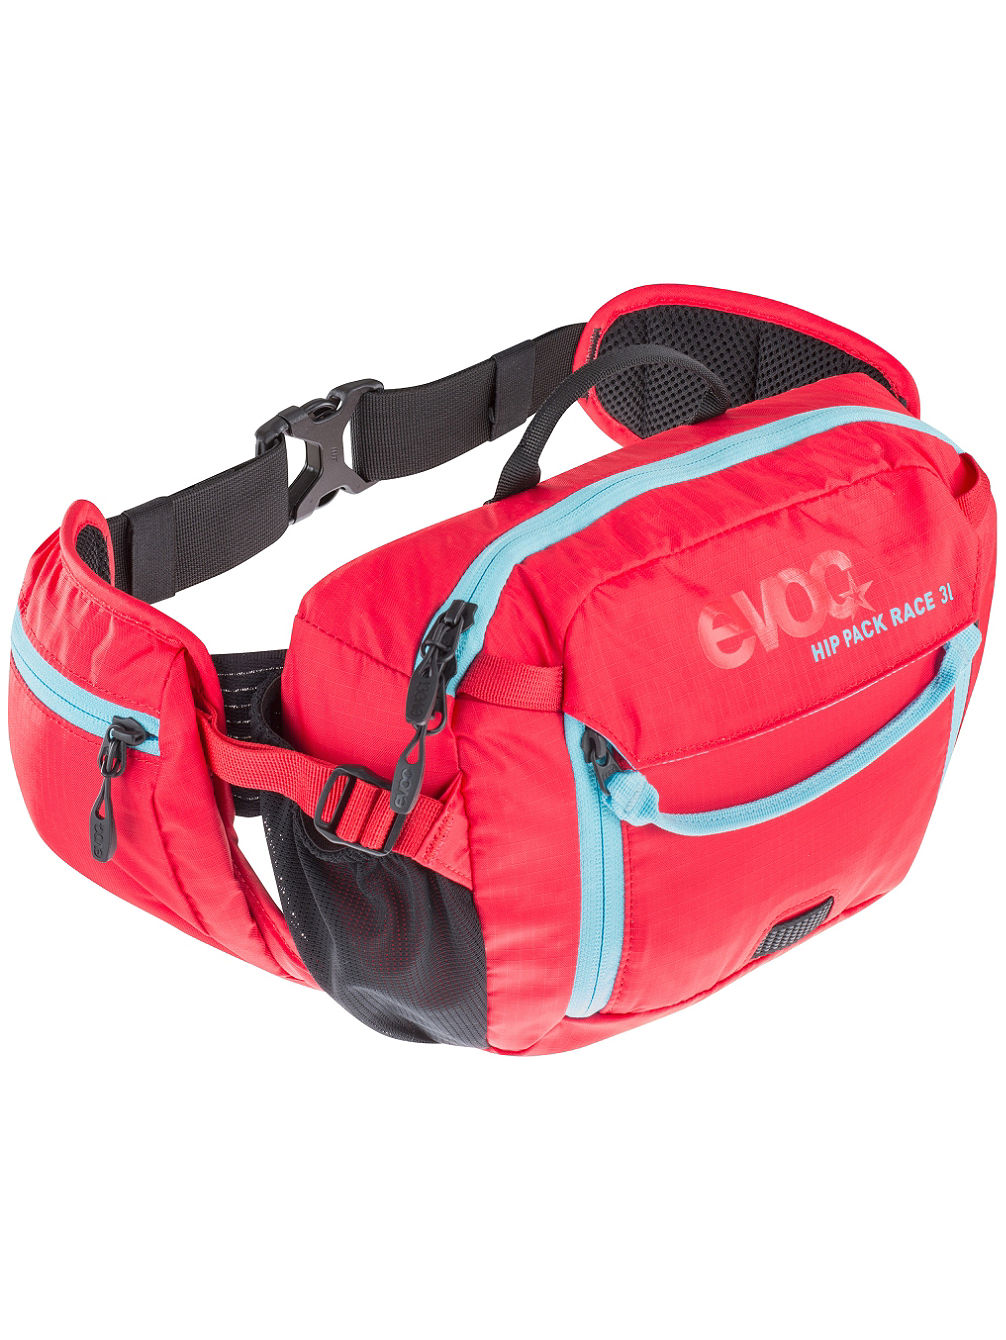 Hip Pack Race 3L Backpack